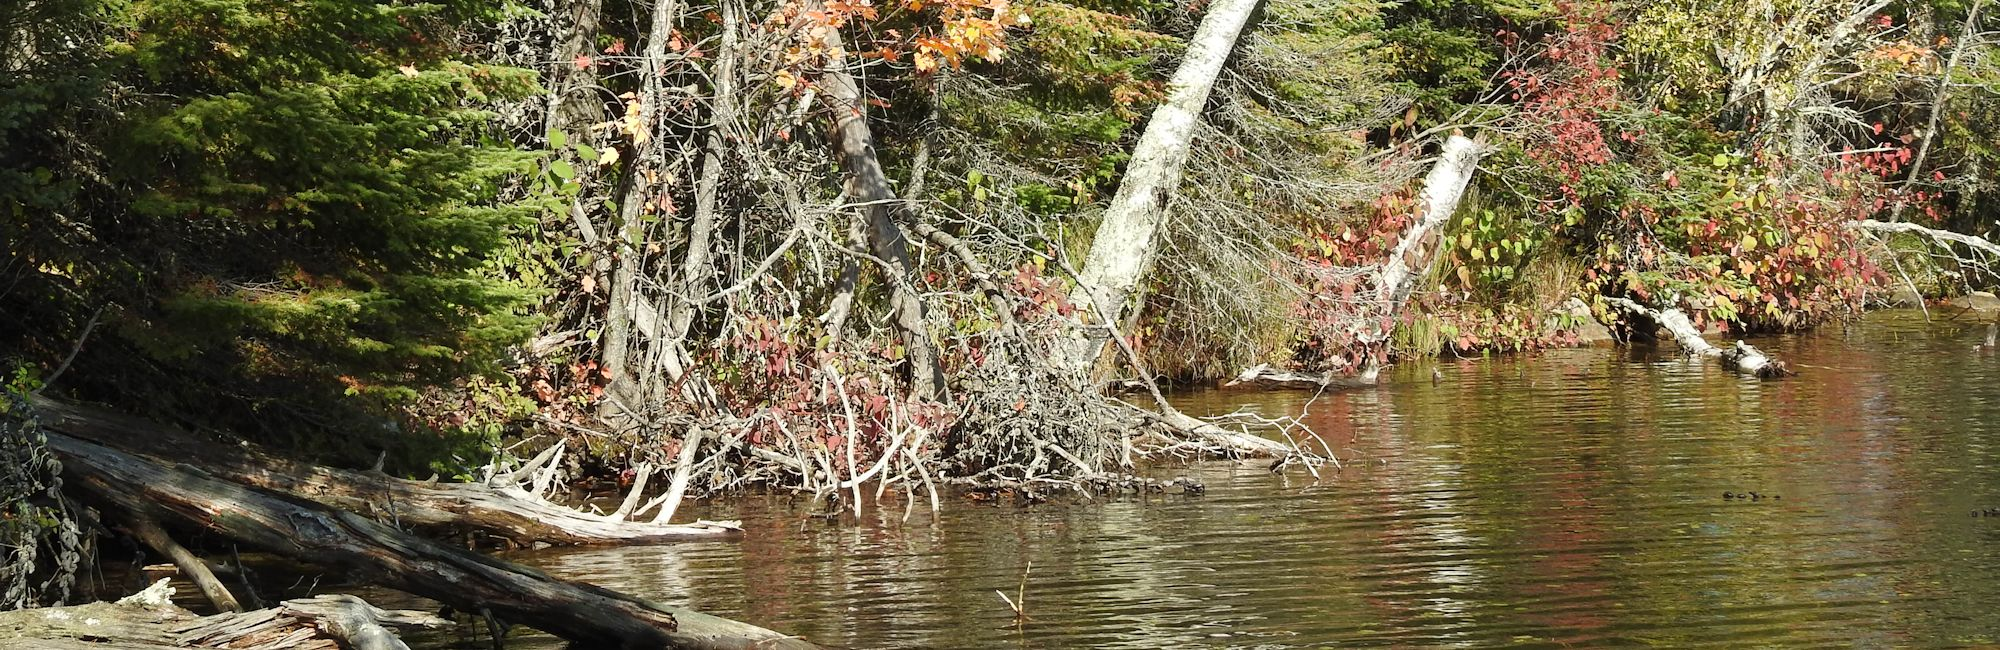 brainerd-draught-fall-colors-1